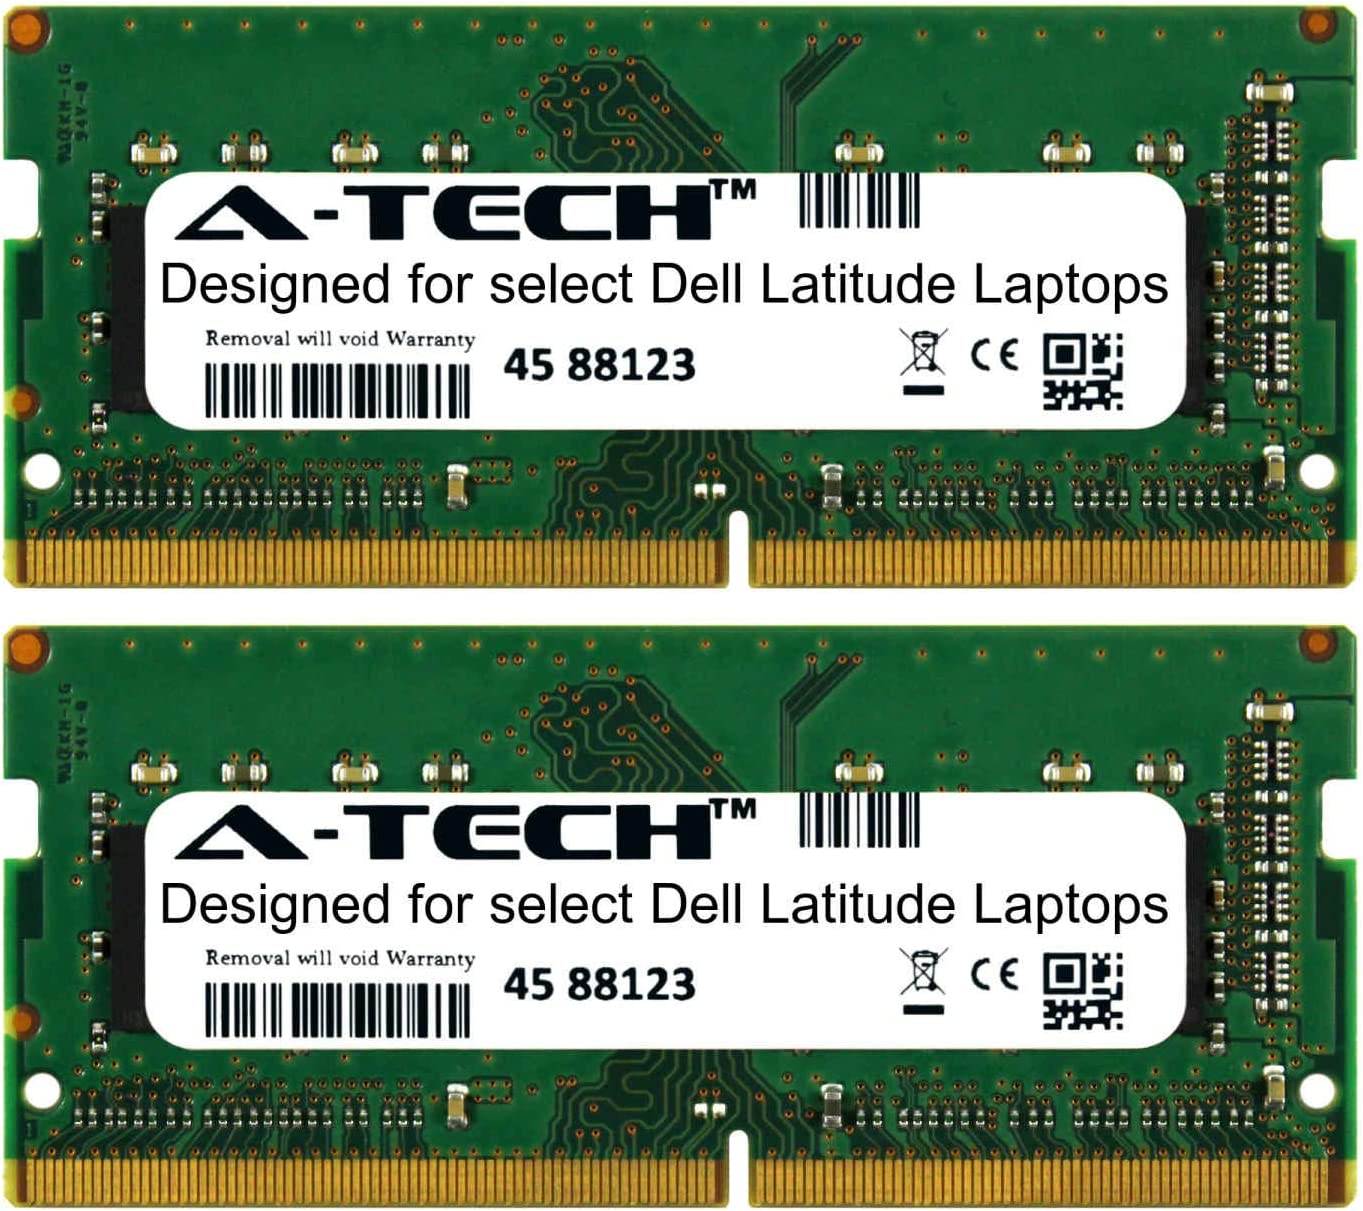 A-Tech 32GB Kit (2 x 16GB) for Dell Latitude 5000 Series 5280 5414 5470 5480 5490 5491 5495 5570 5580 5590 5591 E5280 E5414 E5470 E5480 E5490 E5491 E5570 E5580 E5590 2666Mhz DDR4 Laptop Memory Ram